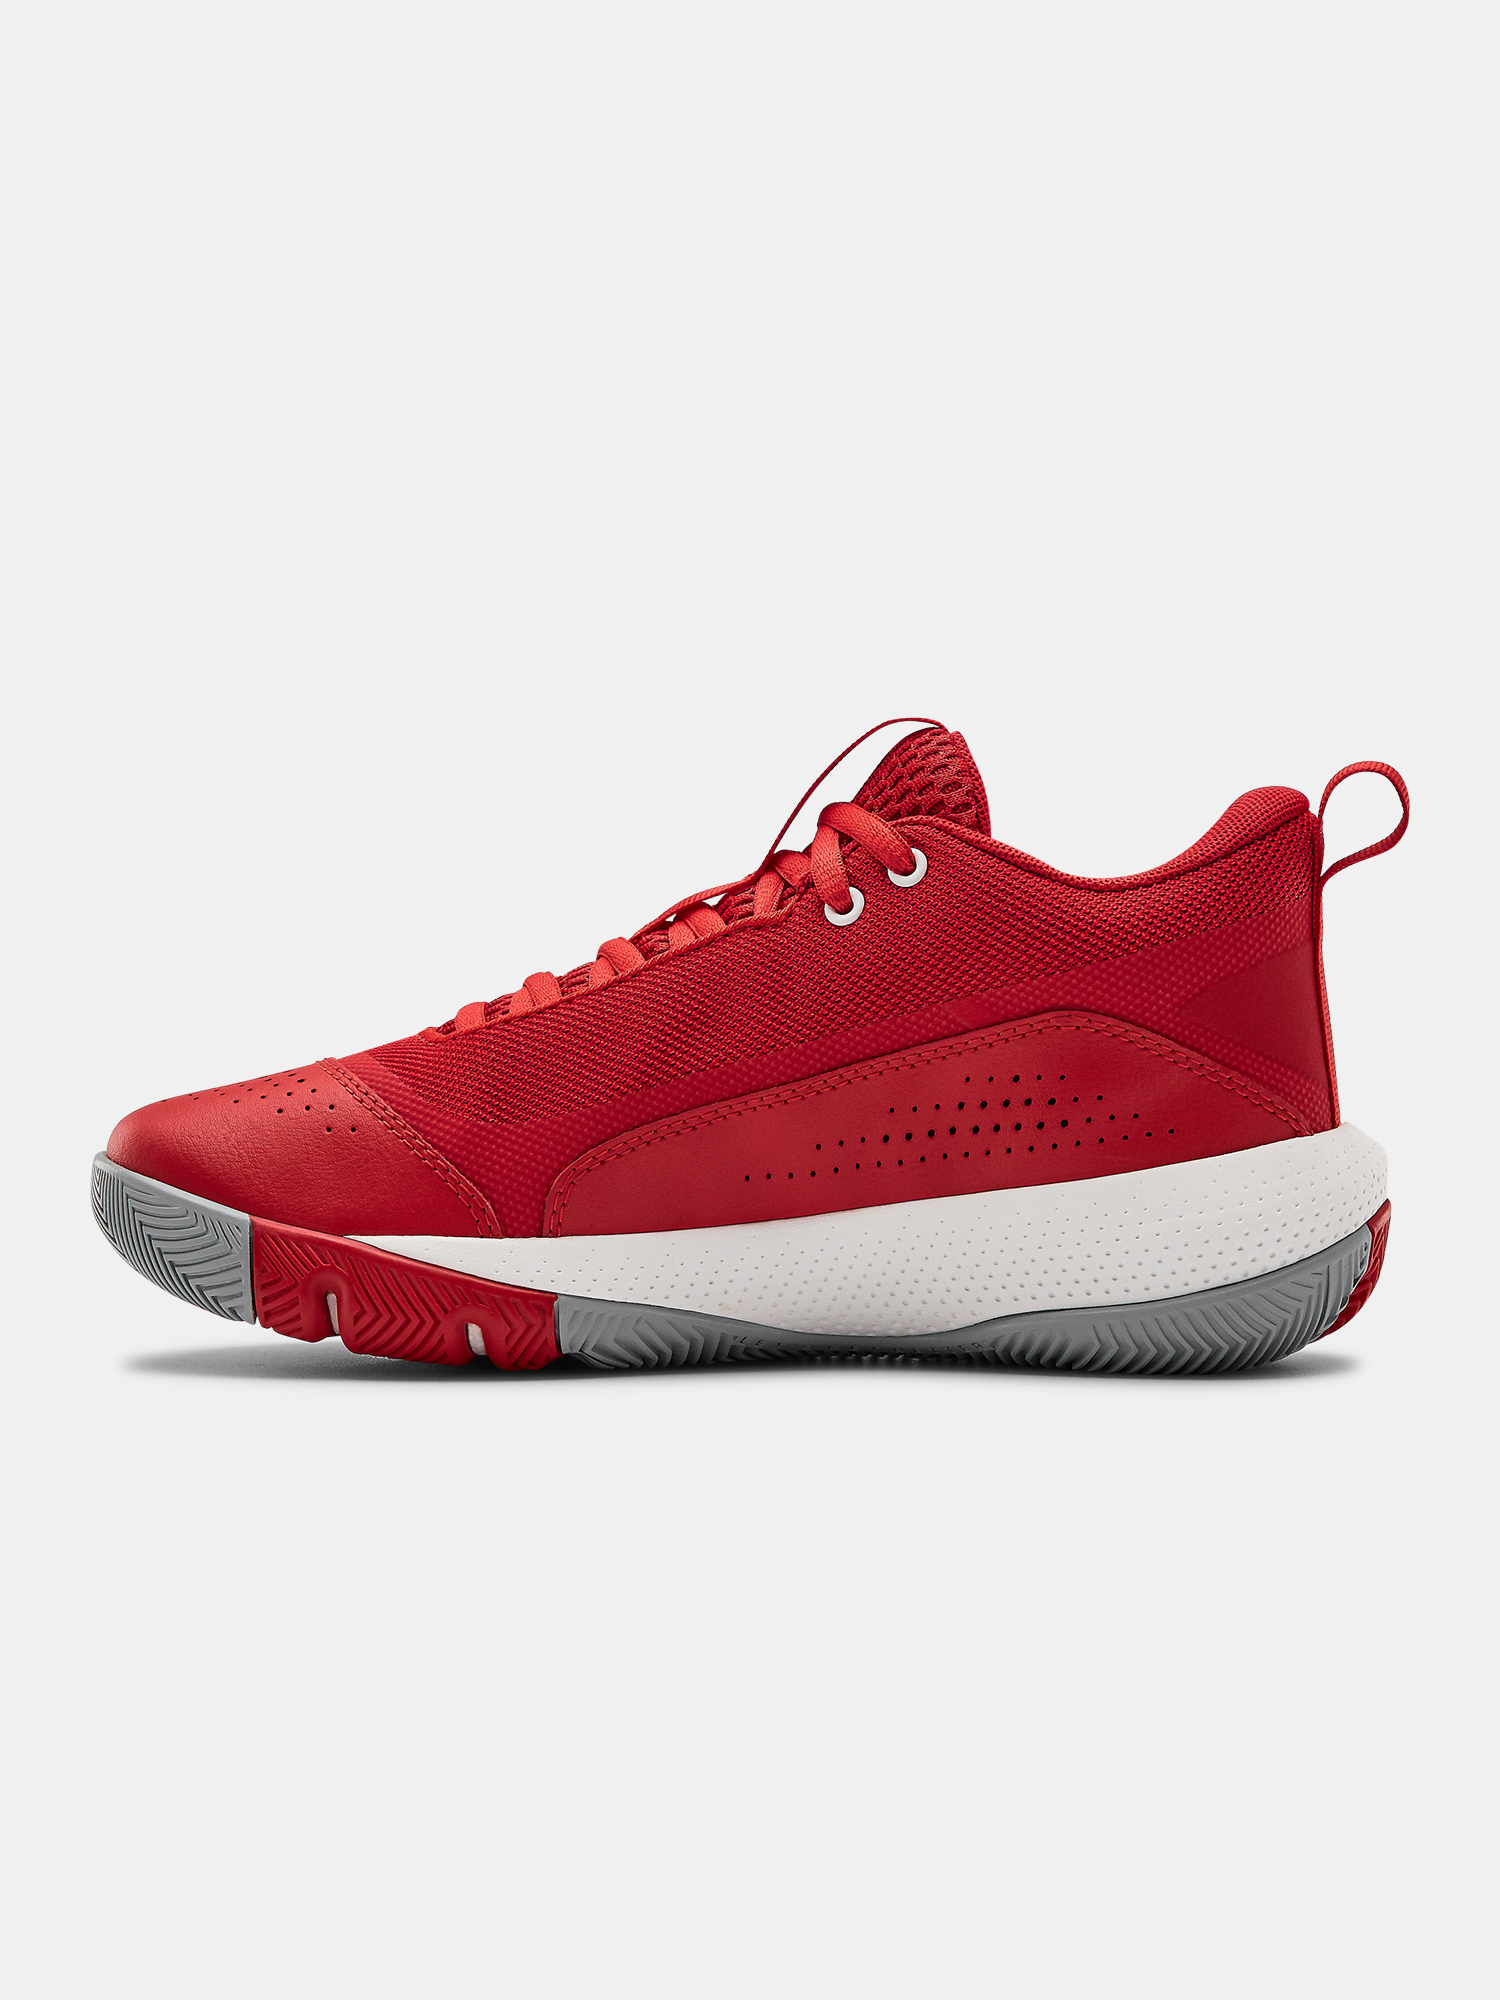 Boty Under Armour GS SC 3ZER0 IV-RED (2)